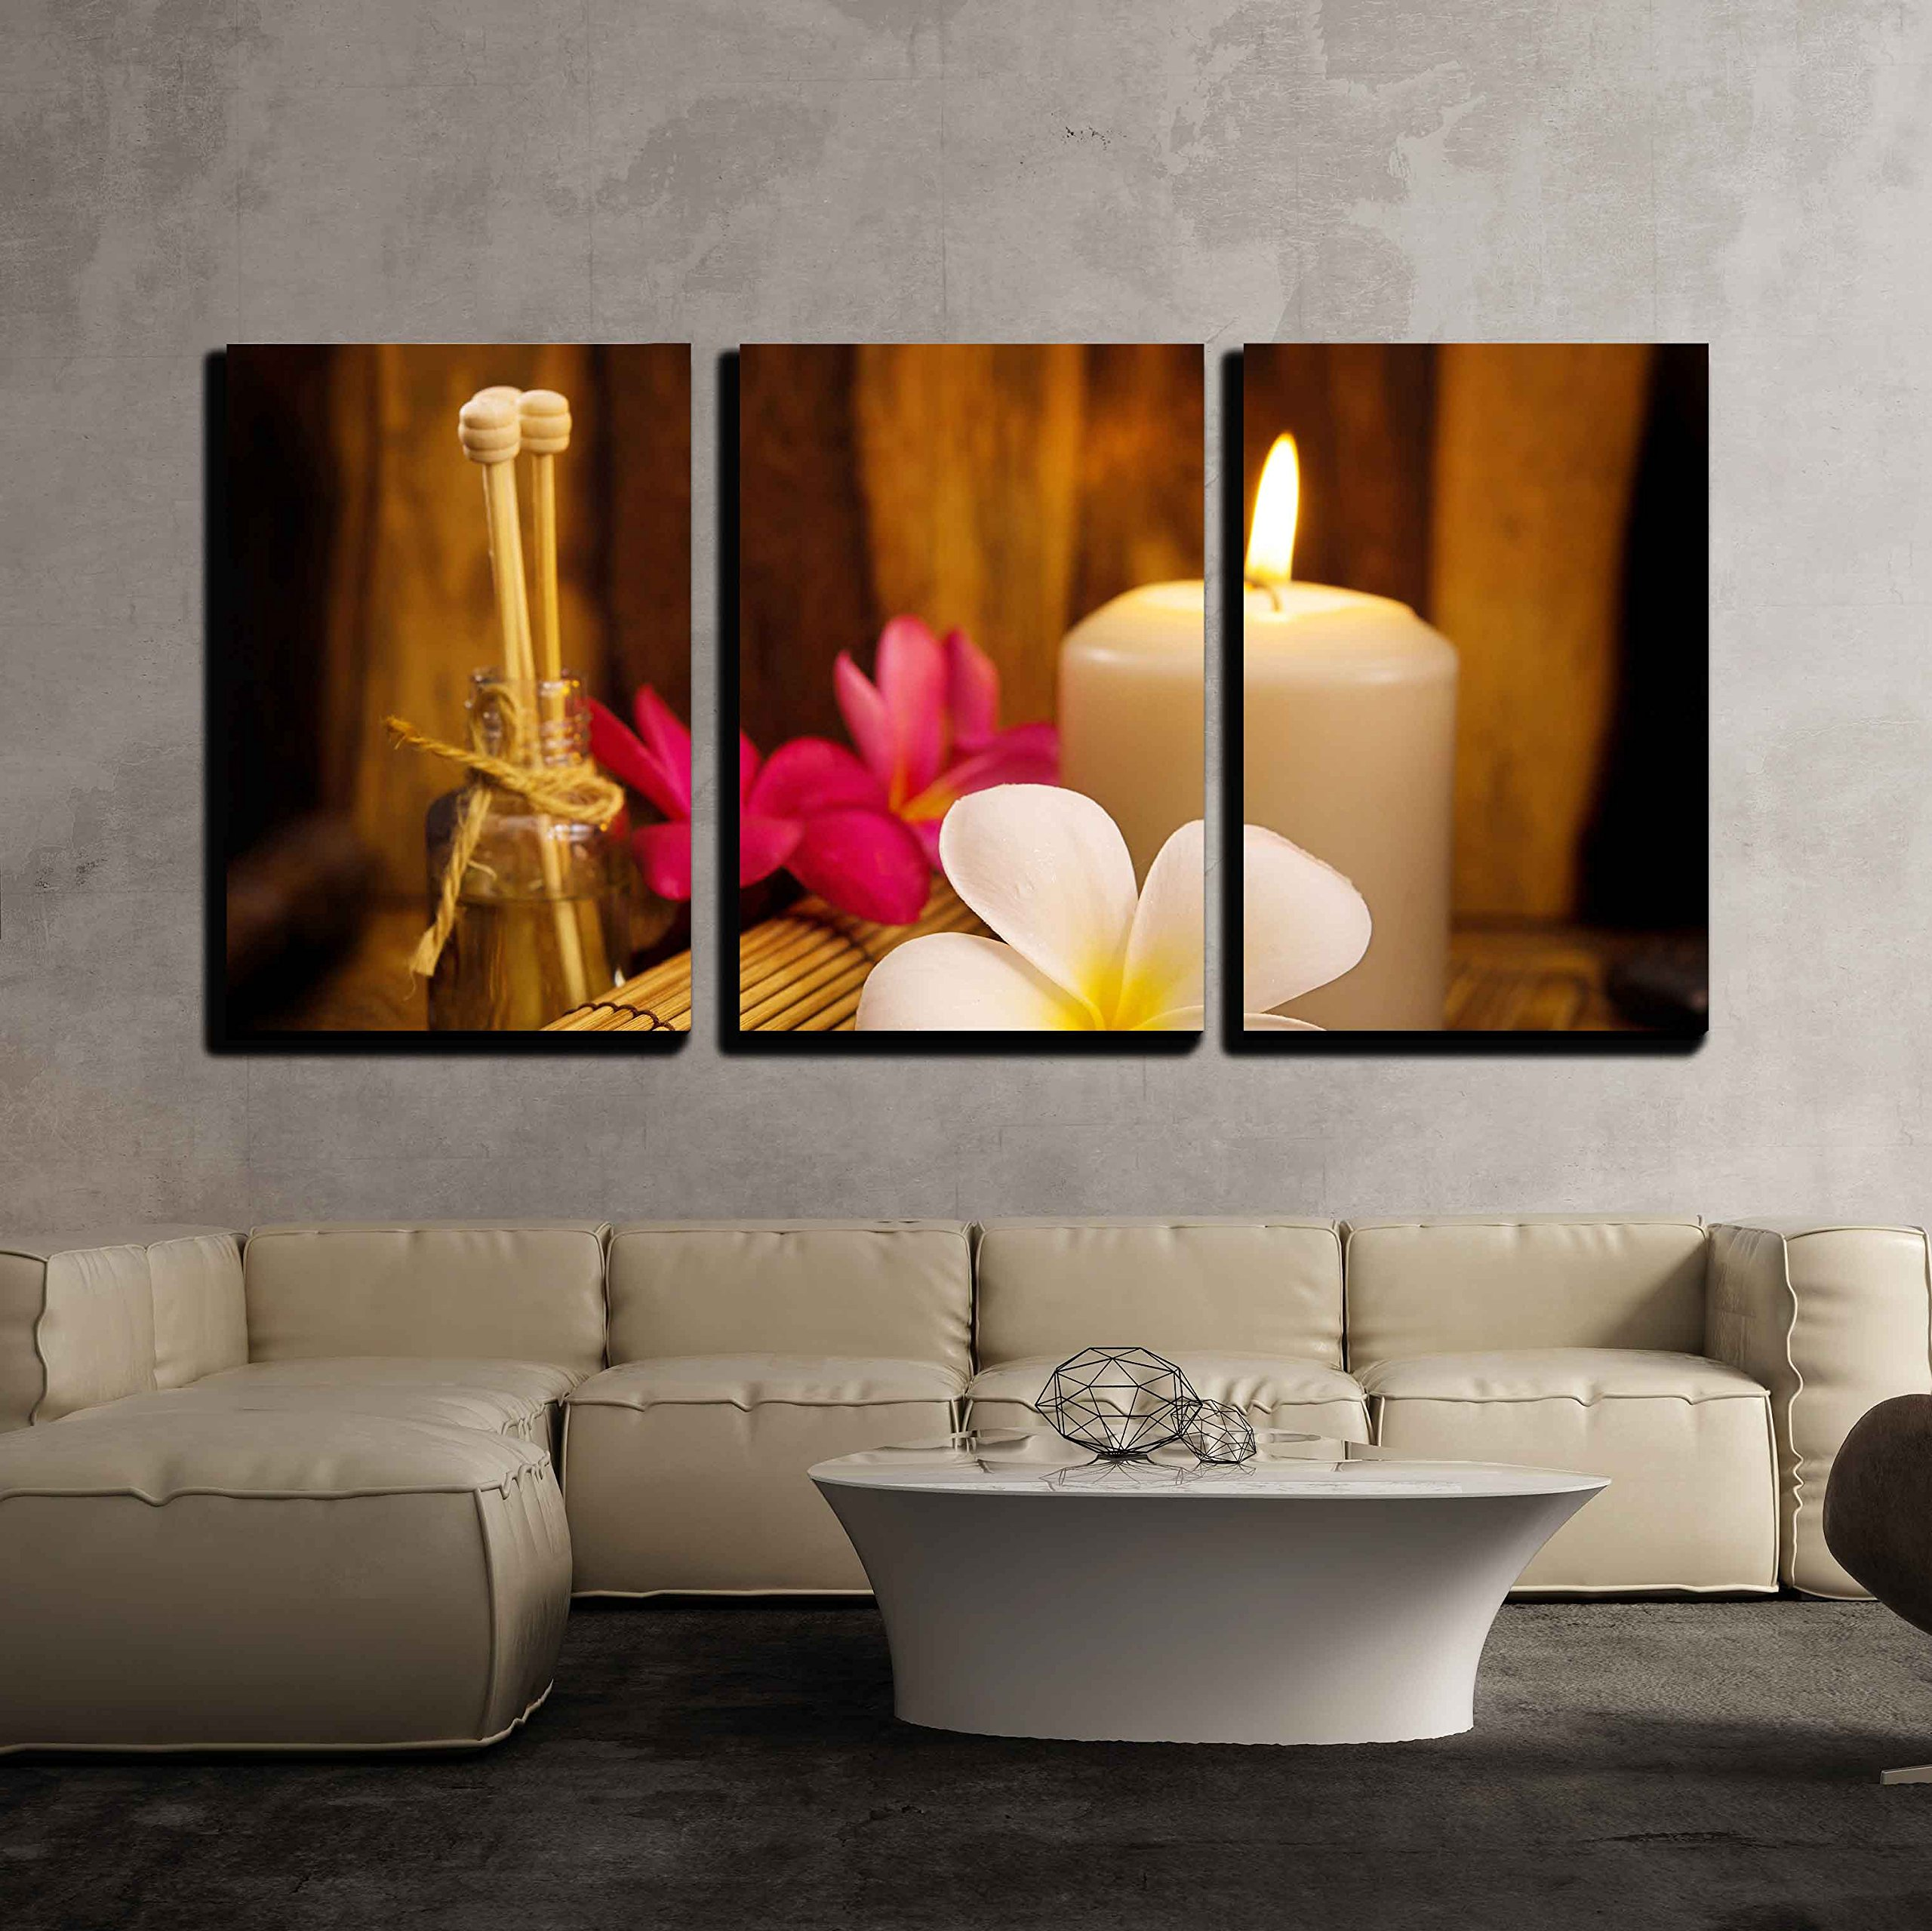 wall26 3 Piece Canvas Wall Art - Spa Still Life with Aromatic Candles and Frangipani - Modern Home Decor Stretched and Framed Ready to Hang - 24''x36''x3 Panels